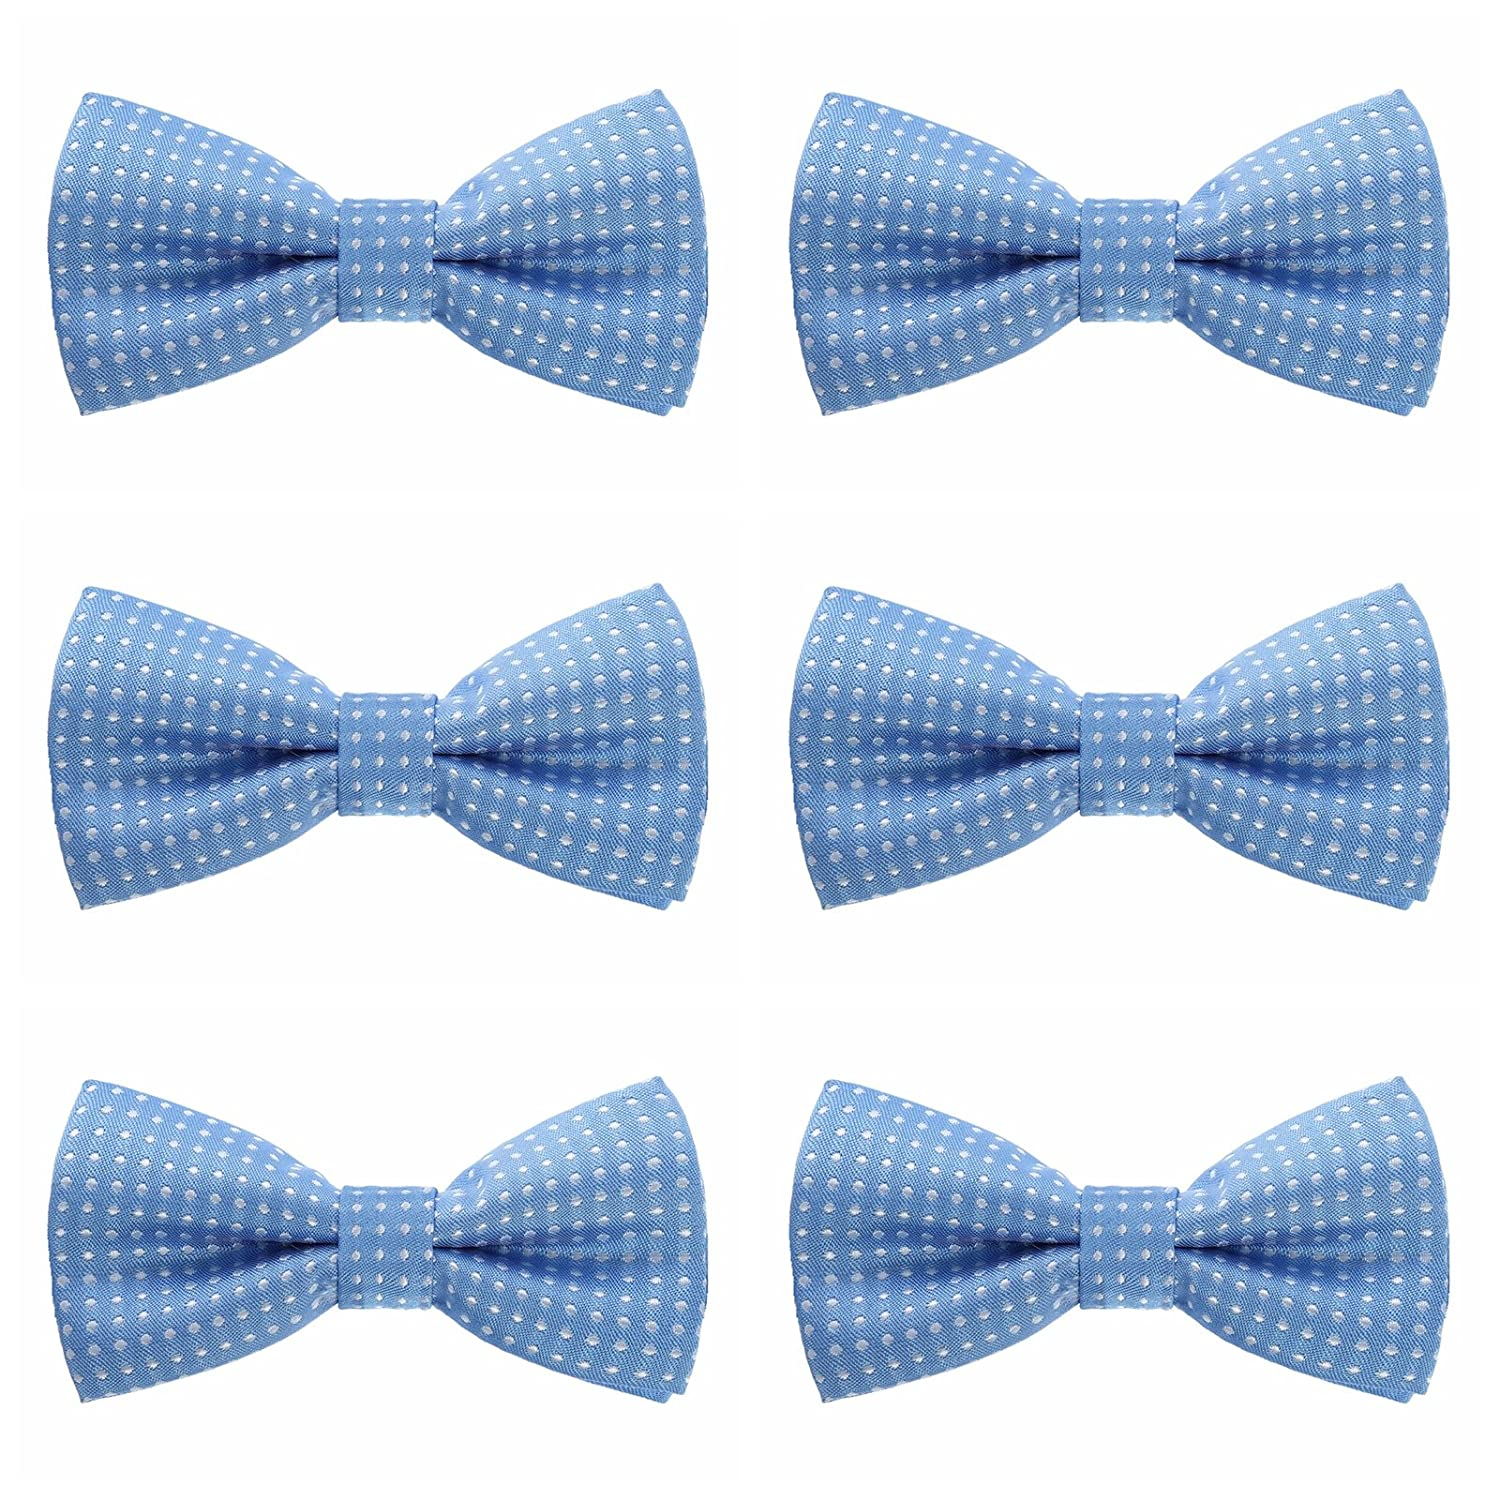 Boys Polka Dots Bow Ties - 6 Pack of Double Layer Adjustable Pre Tied Bowties (Black)